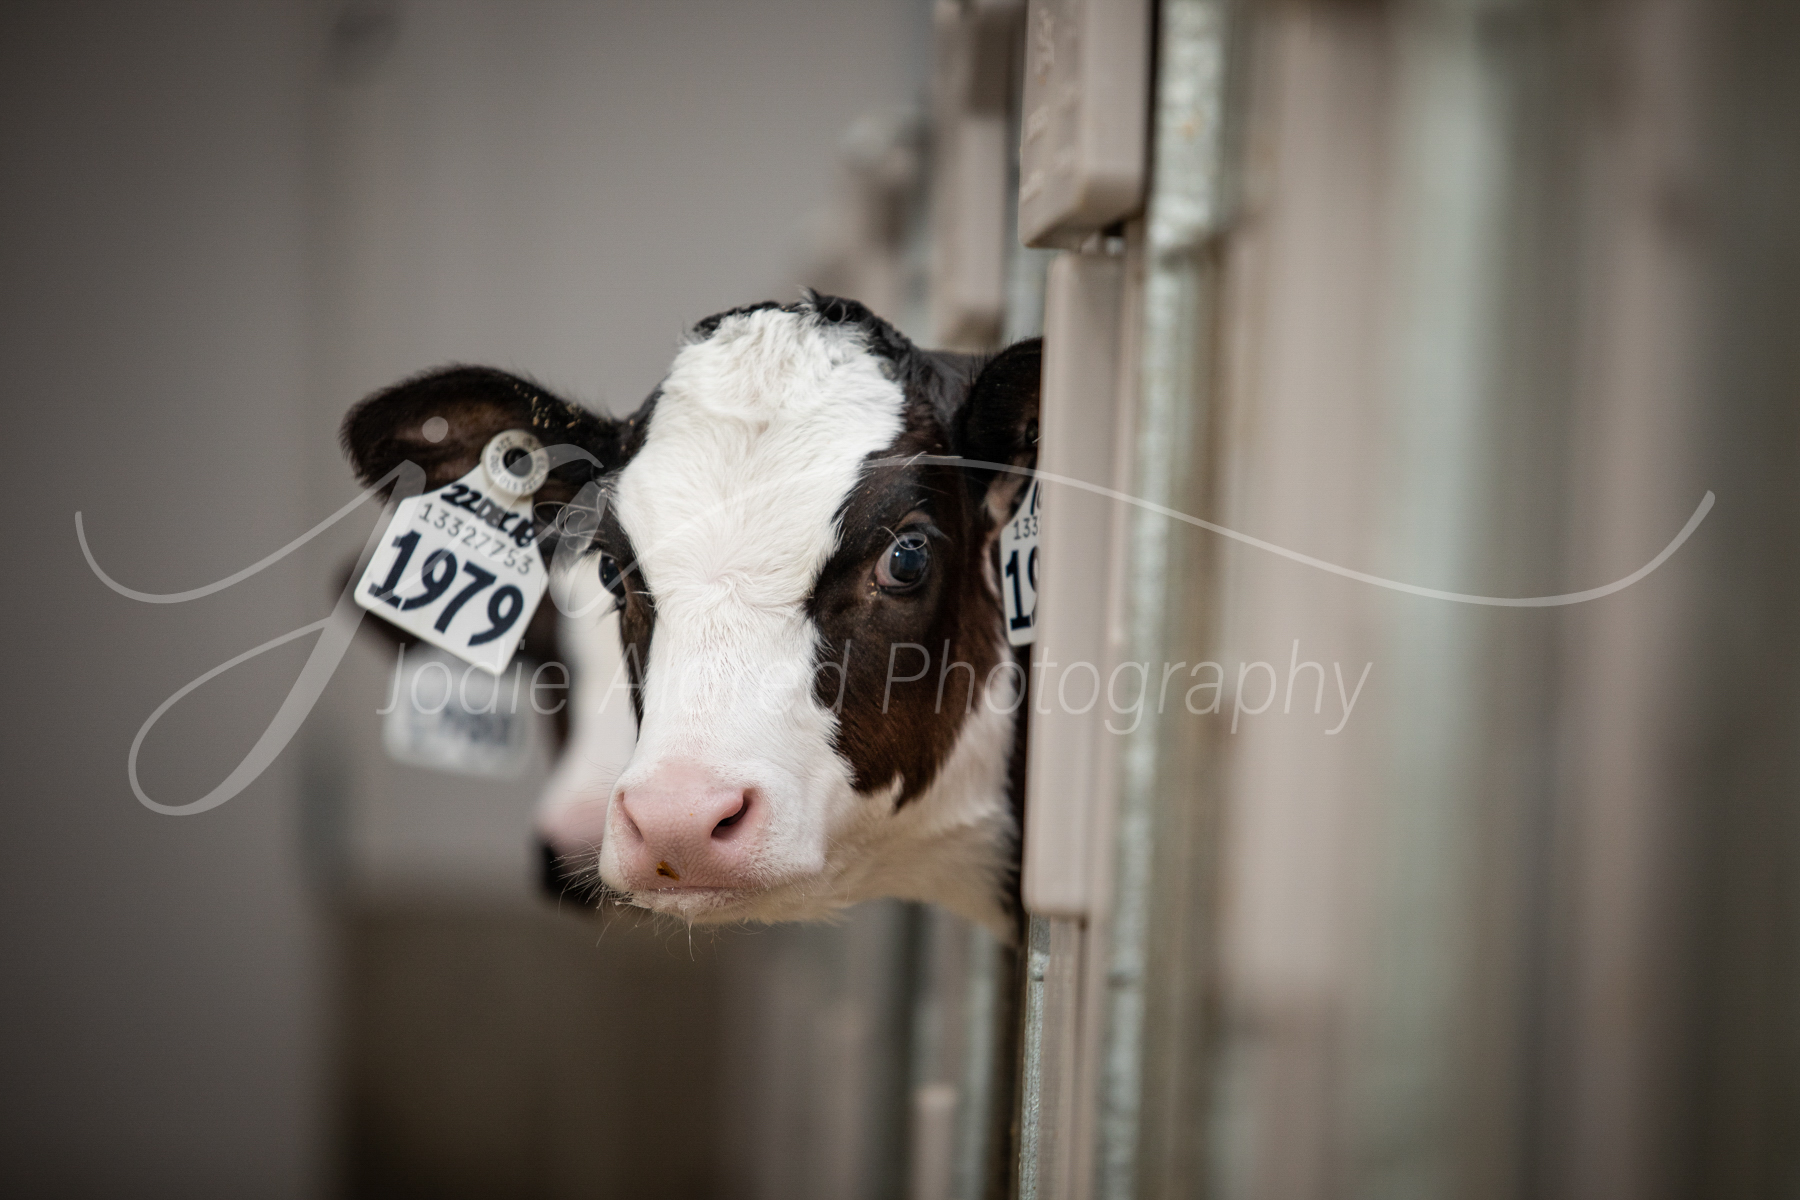 Jodie-Aldred-Photography-Ontario-Agriculture-Photographer-Farm-Outdoors-Nature-Middlesex-Elgin-Chathma-Kent-Huron-Photographer-calf-dairy-cattle-barn.jpg